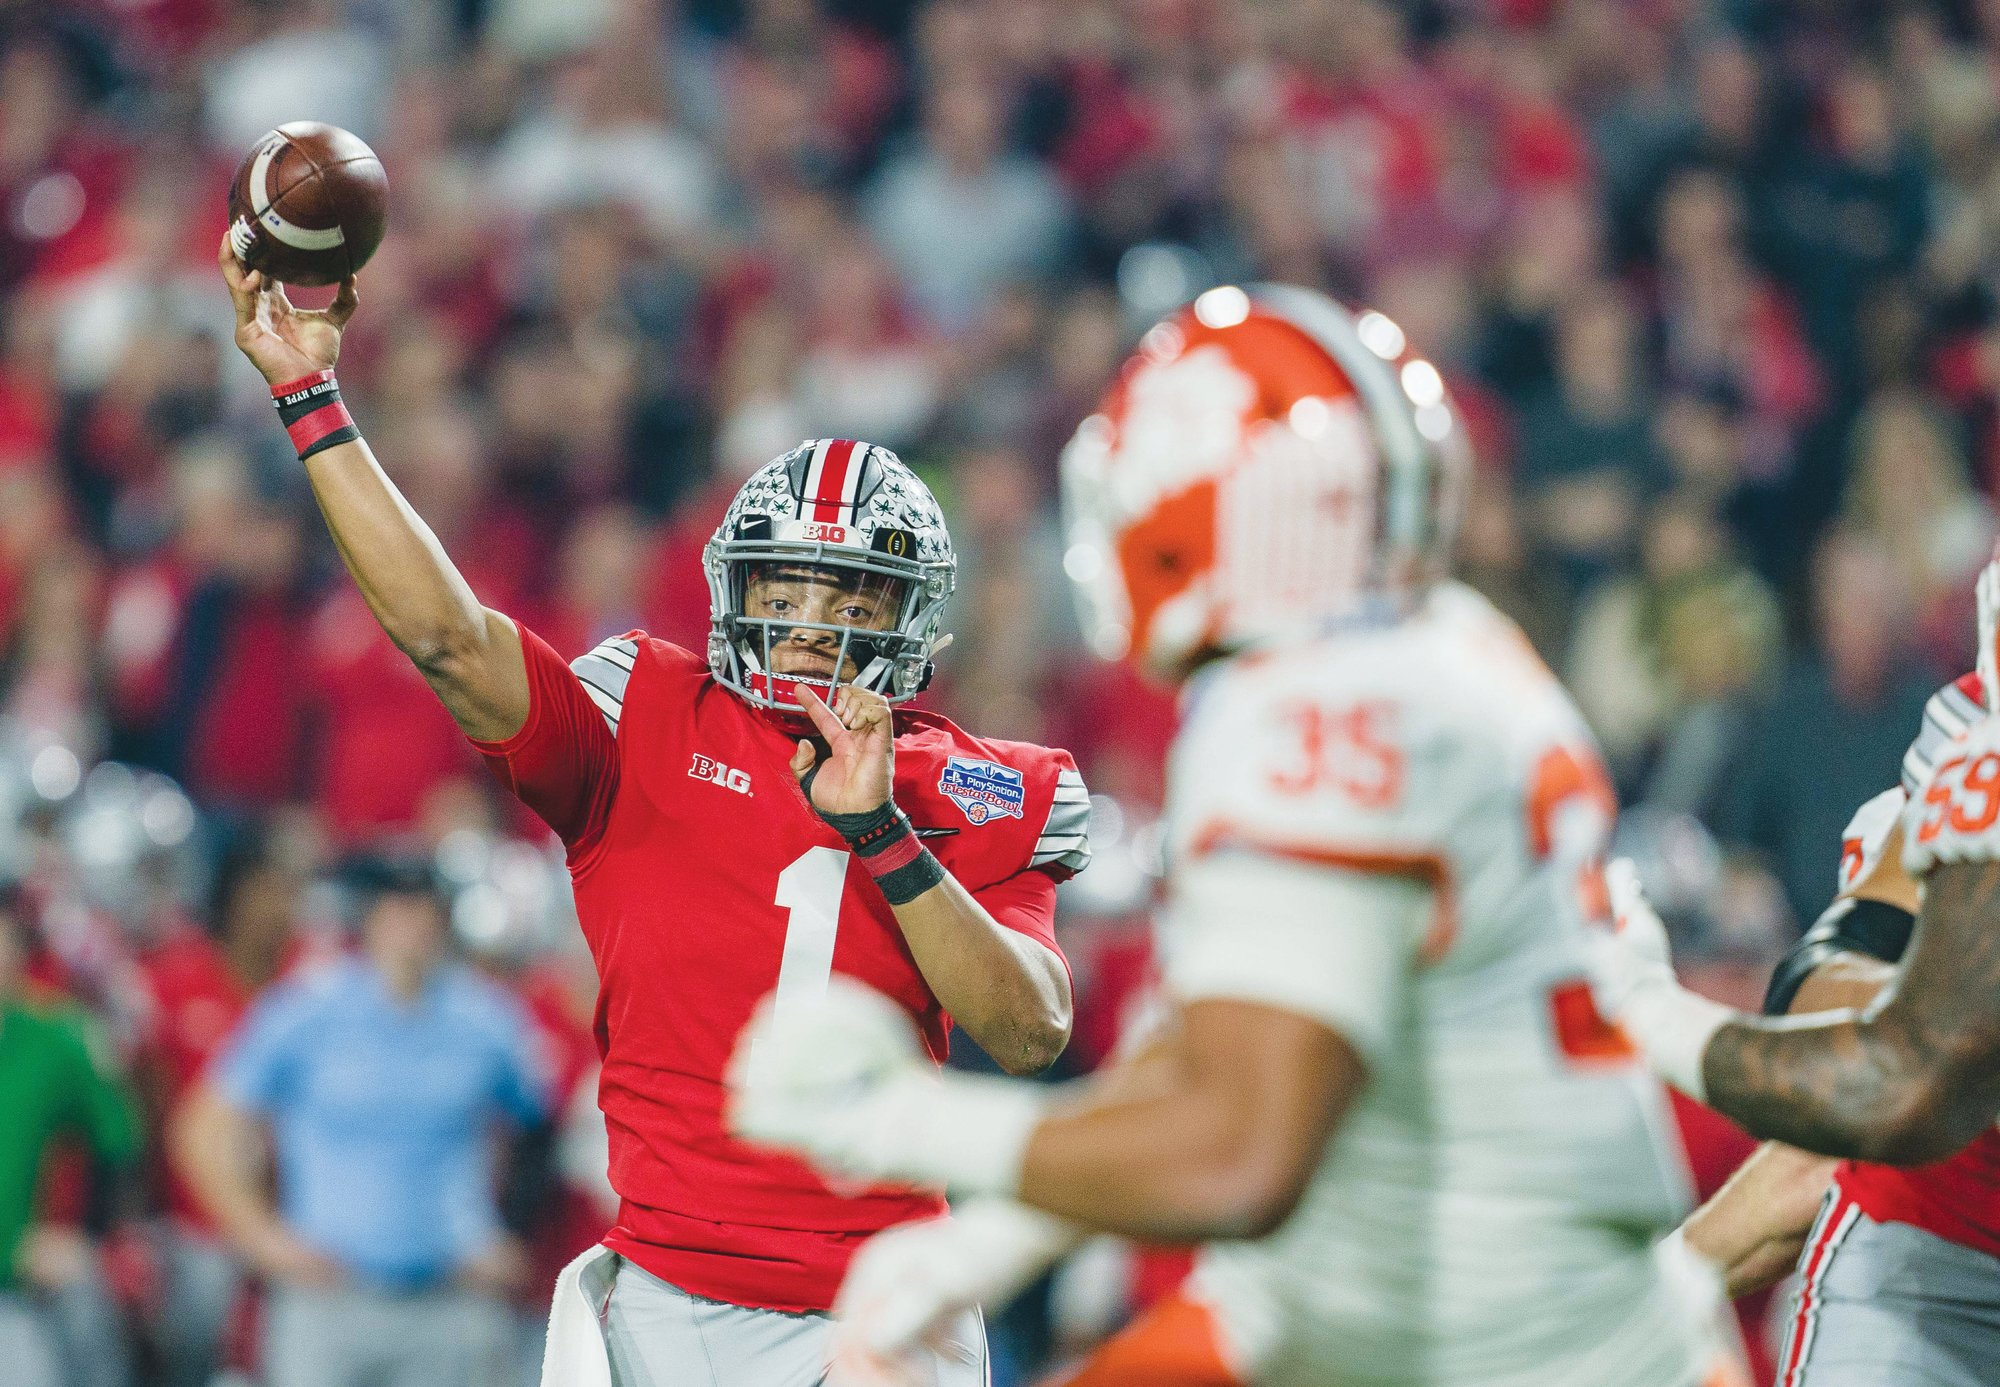 The Big Ten is looking into multiple options to reschedule its football season, opening the door for players like Ohio State quarterback Justin Fields (1) to play some form of college football this season.